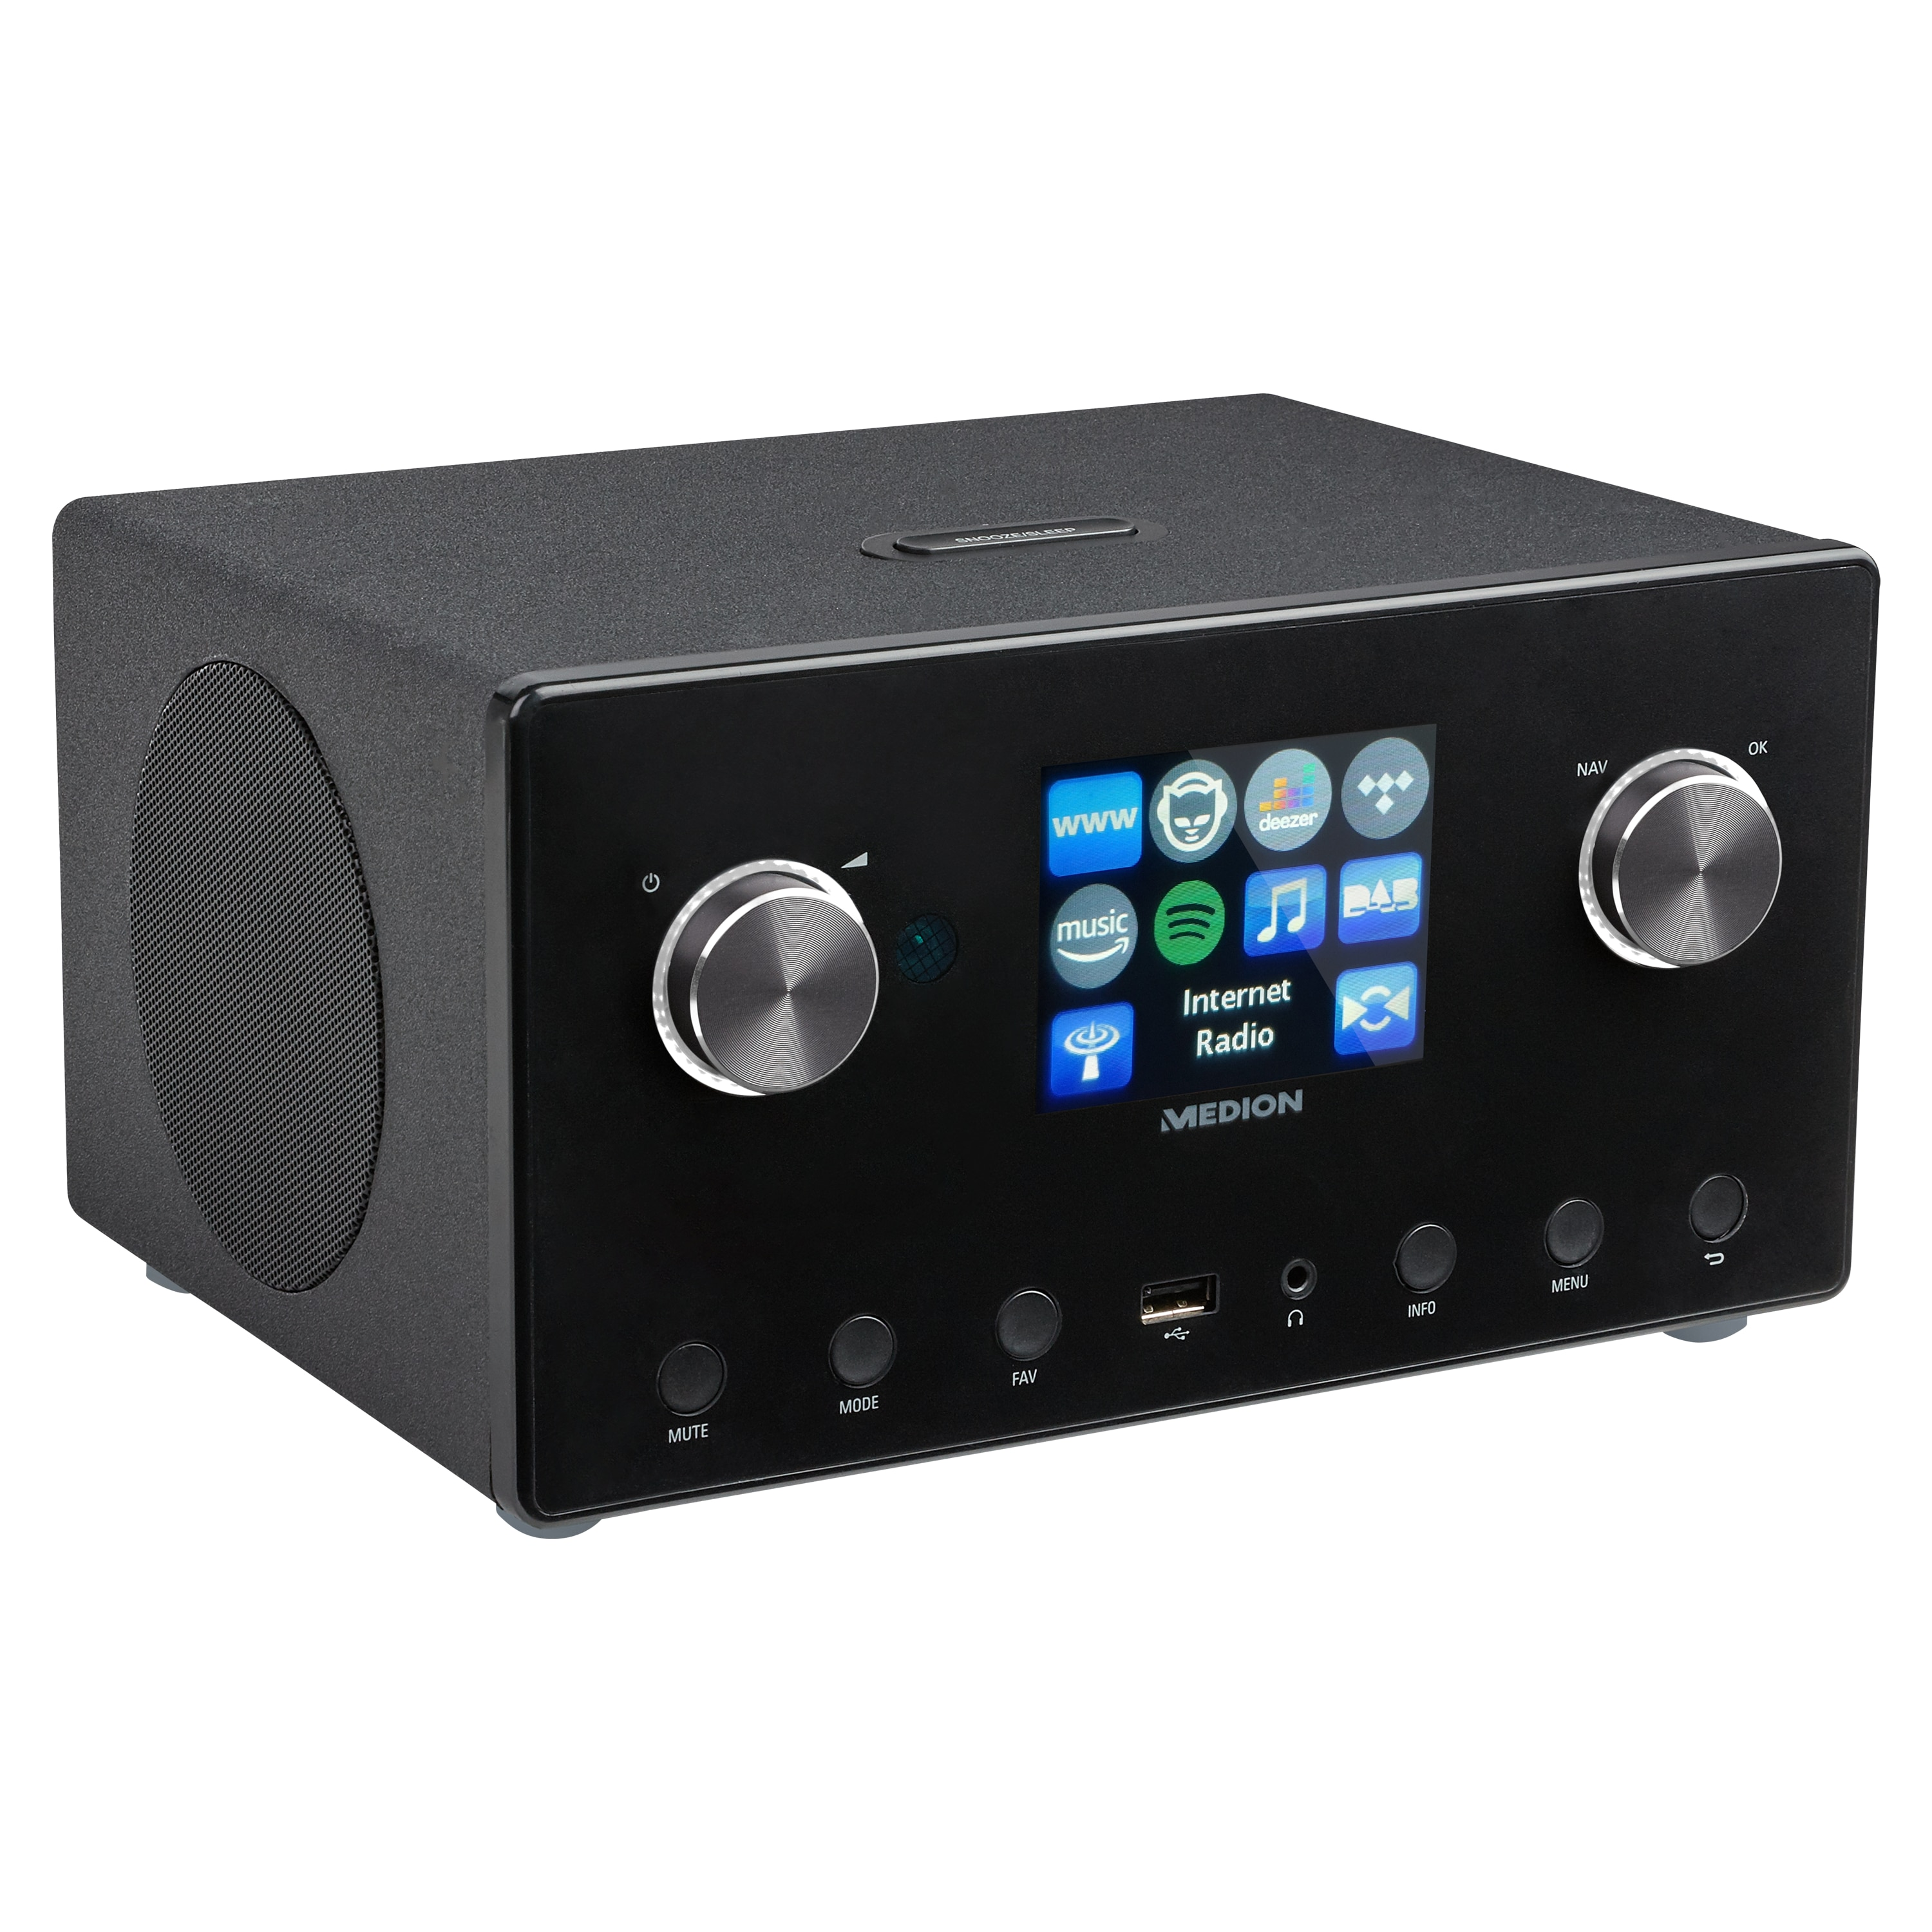 """MEDION® LIFE® P85295 Stereo Internetradio, großes 8,1 cm (3,2"""") TFT-Display, DAB+ & UKW, Spotify®-Connect, DLNA, USB, WLAN, LAN, integrierter Subwoofer, 2 x 7,5 W + 1 x 15 W (RMS)"""